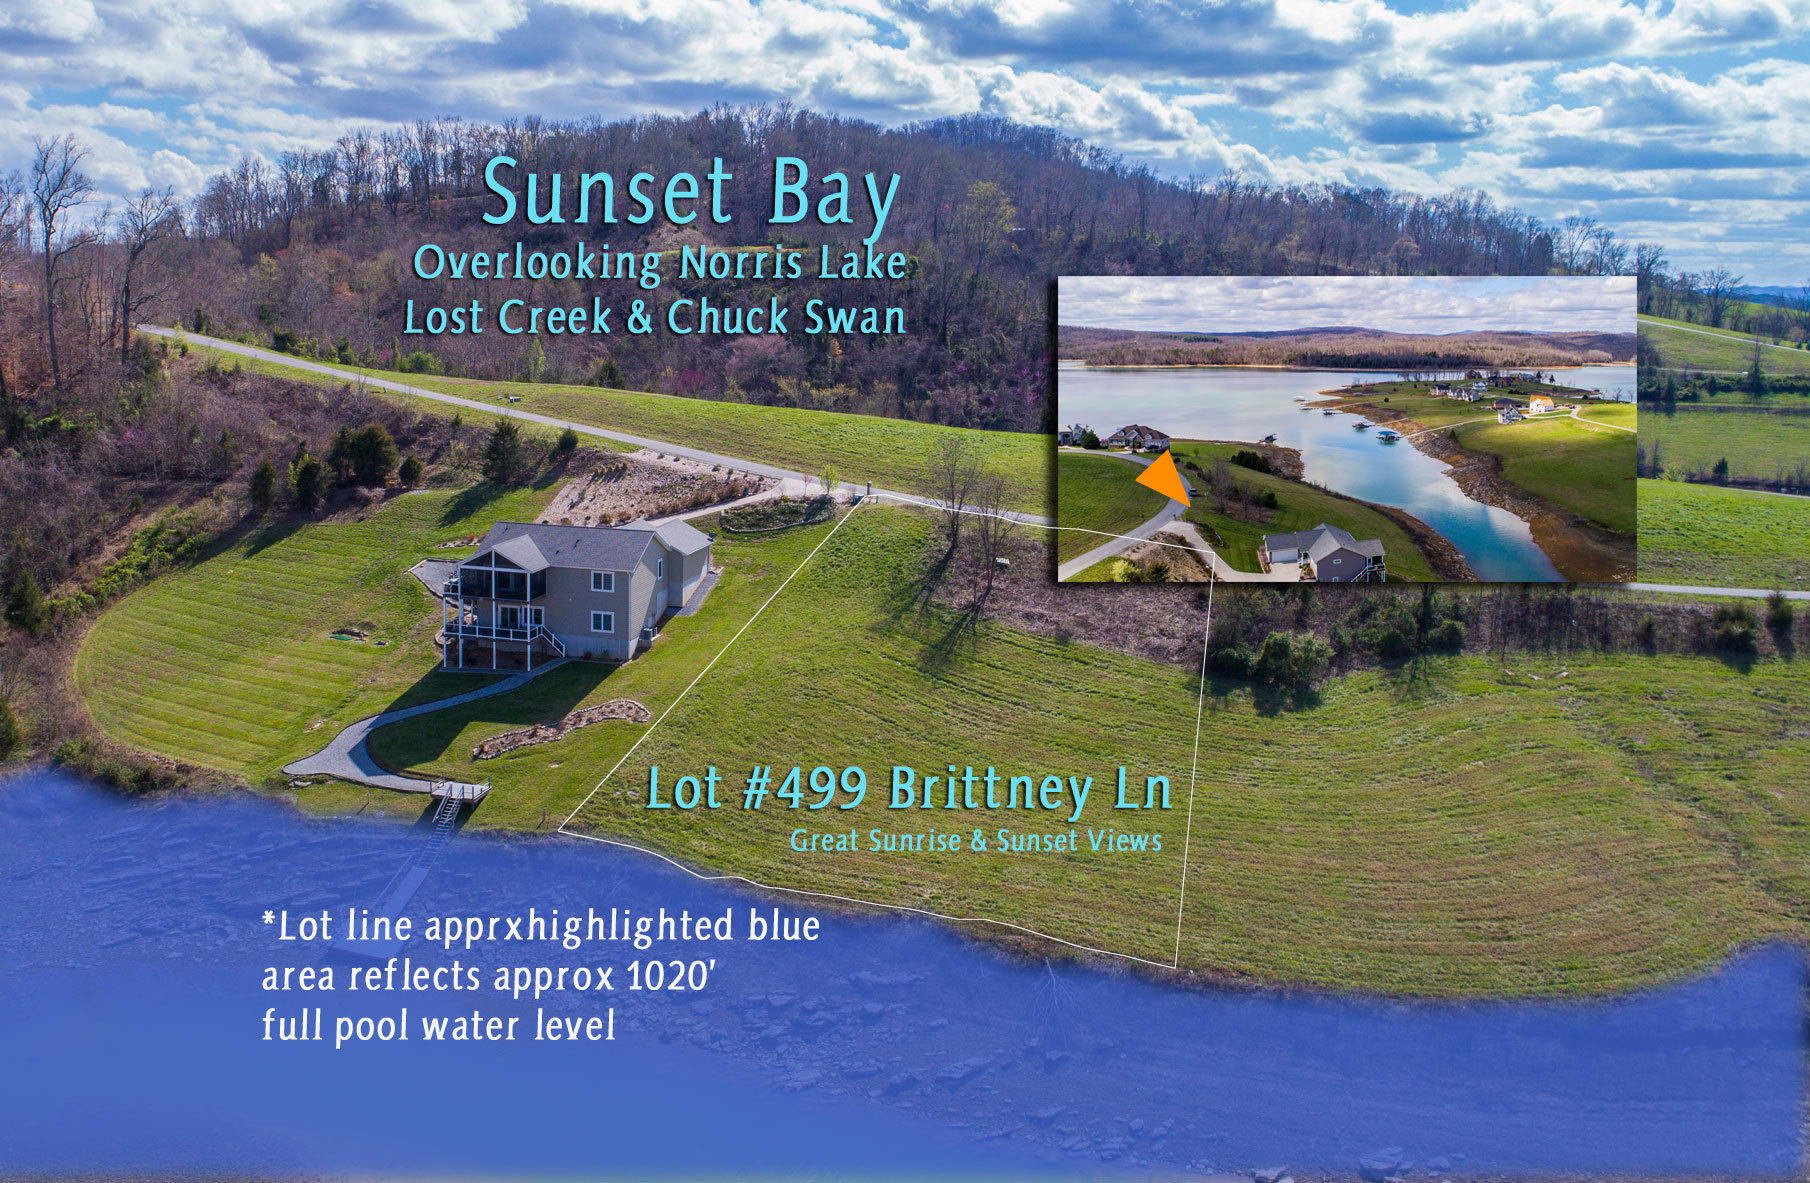 Lot 499 Brittney Lane: